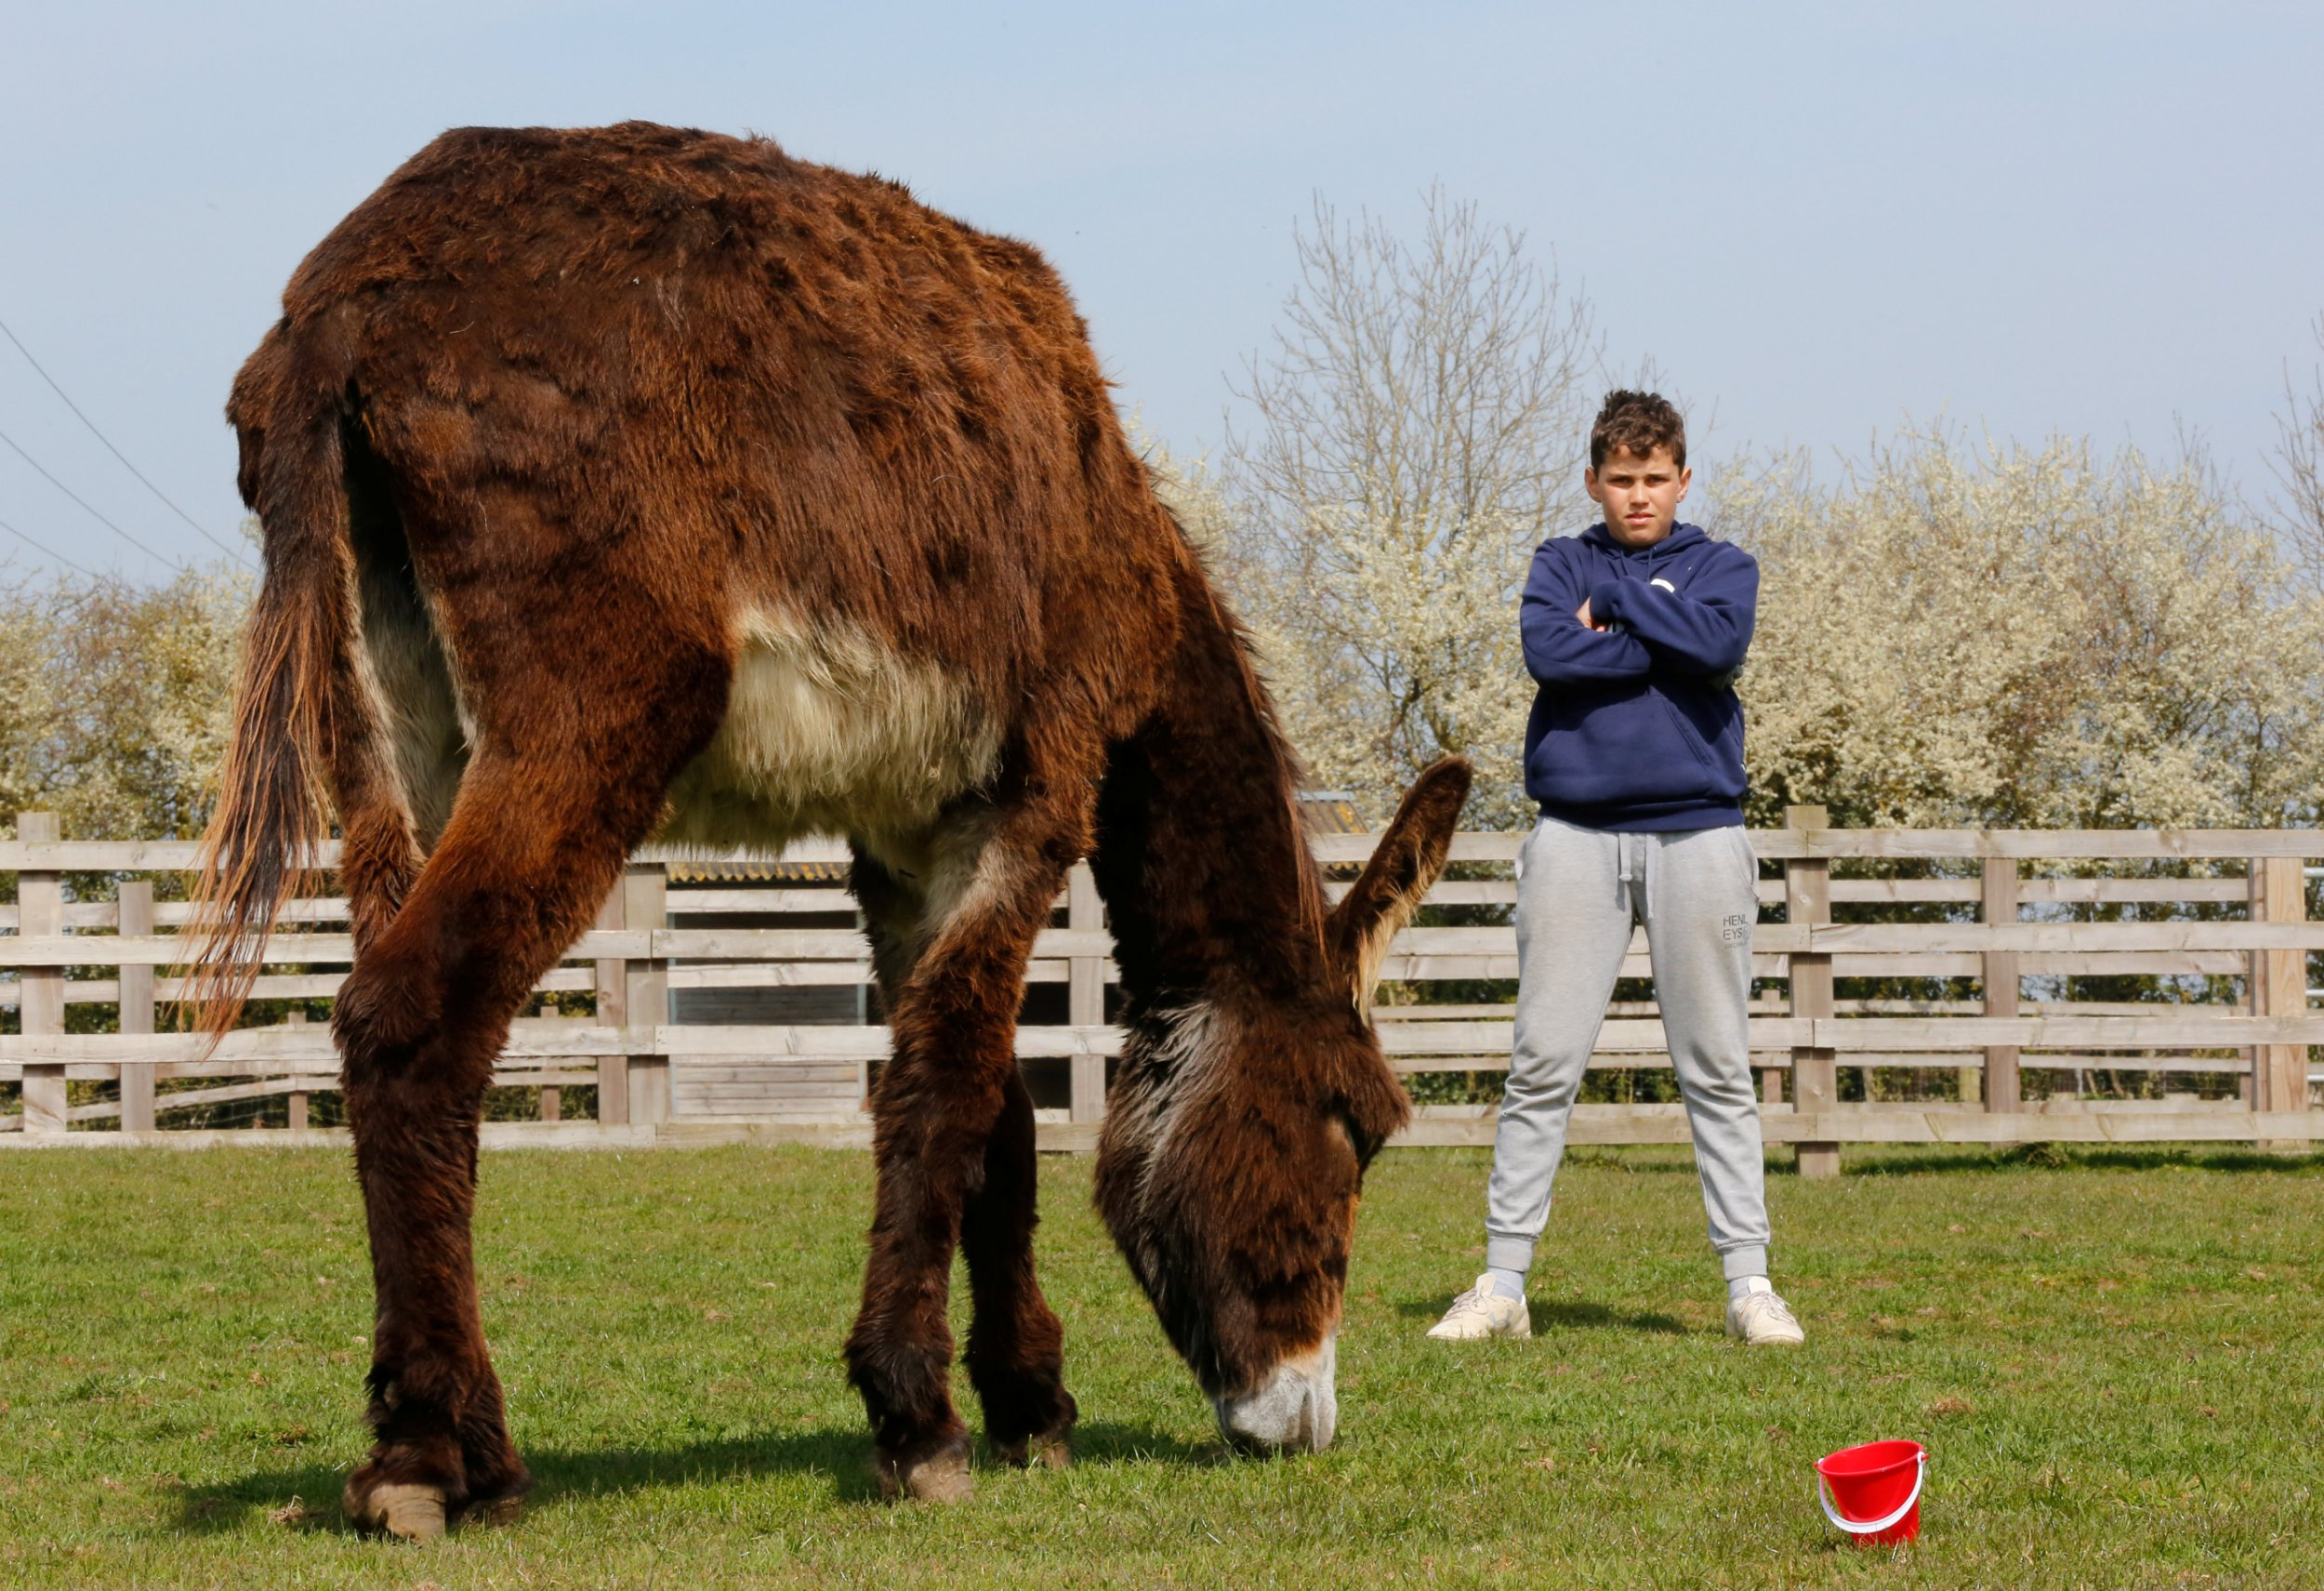 Tyler Allen-Day, 12, with giant donkey, Derrick